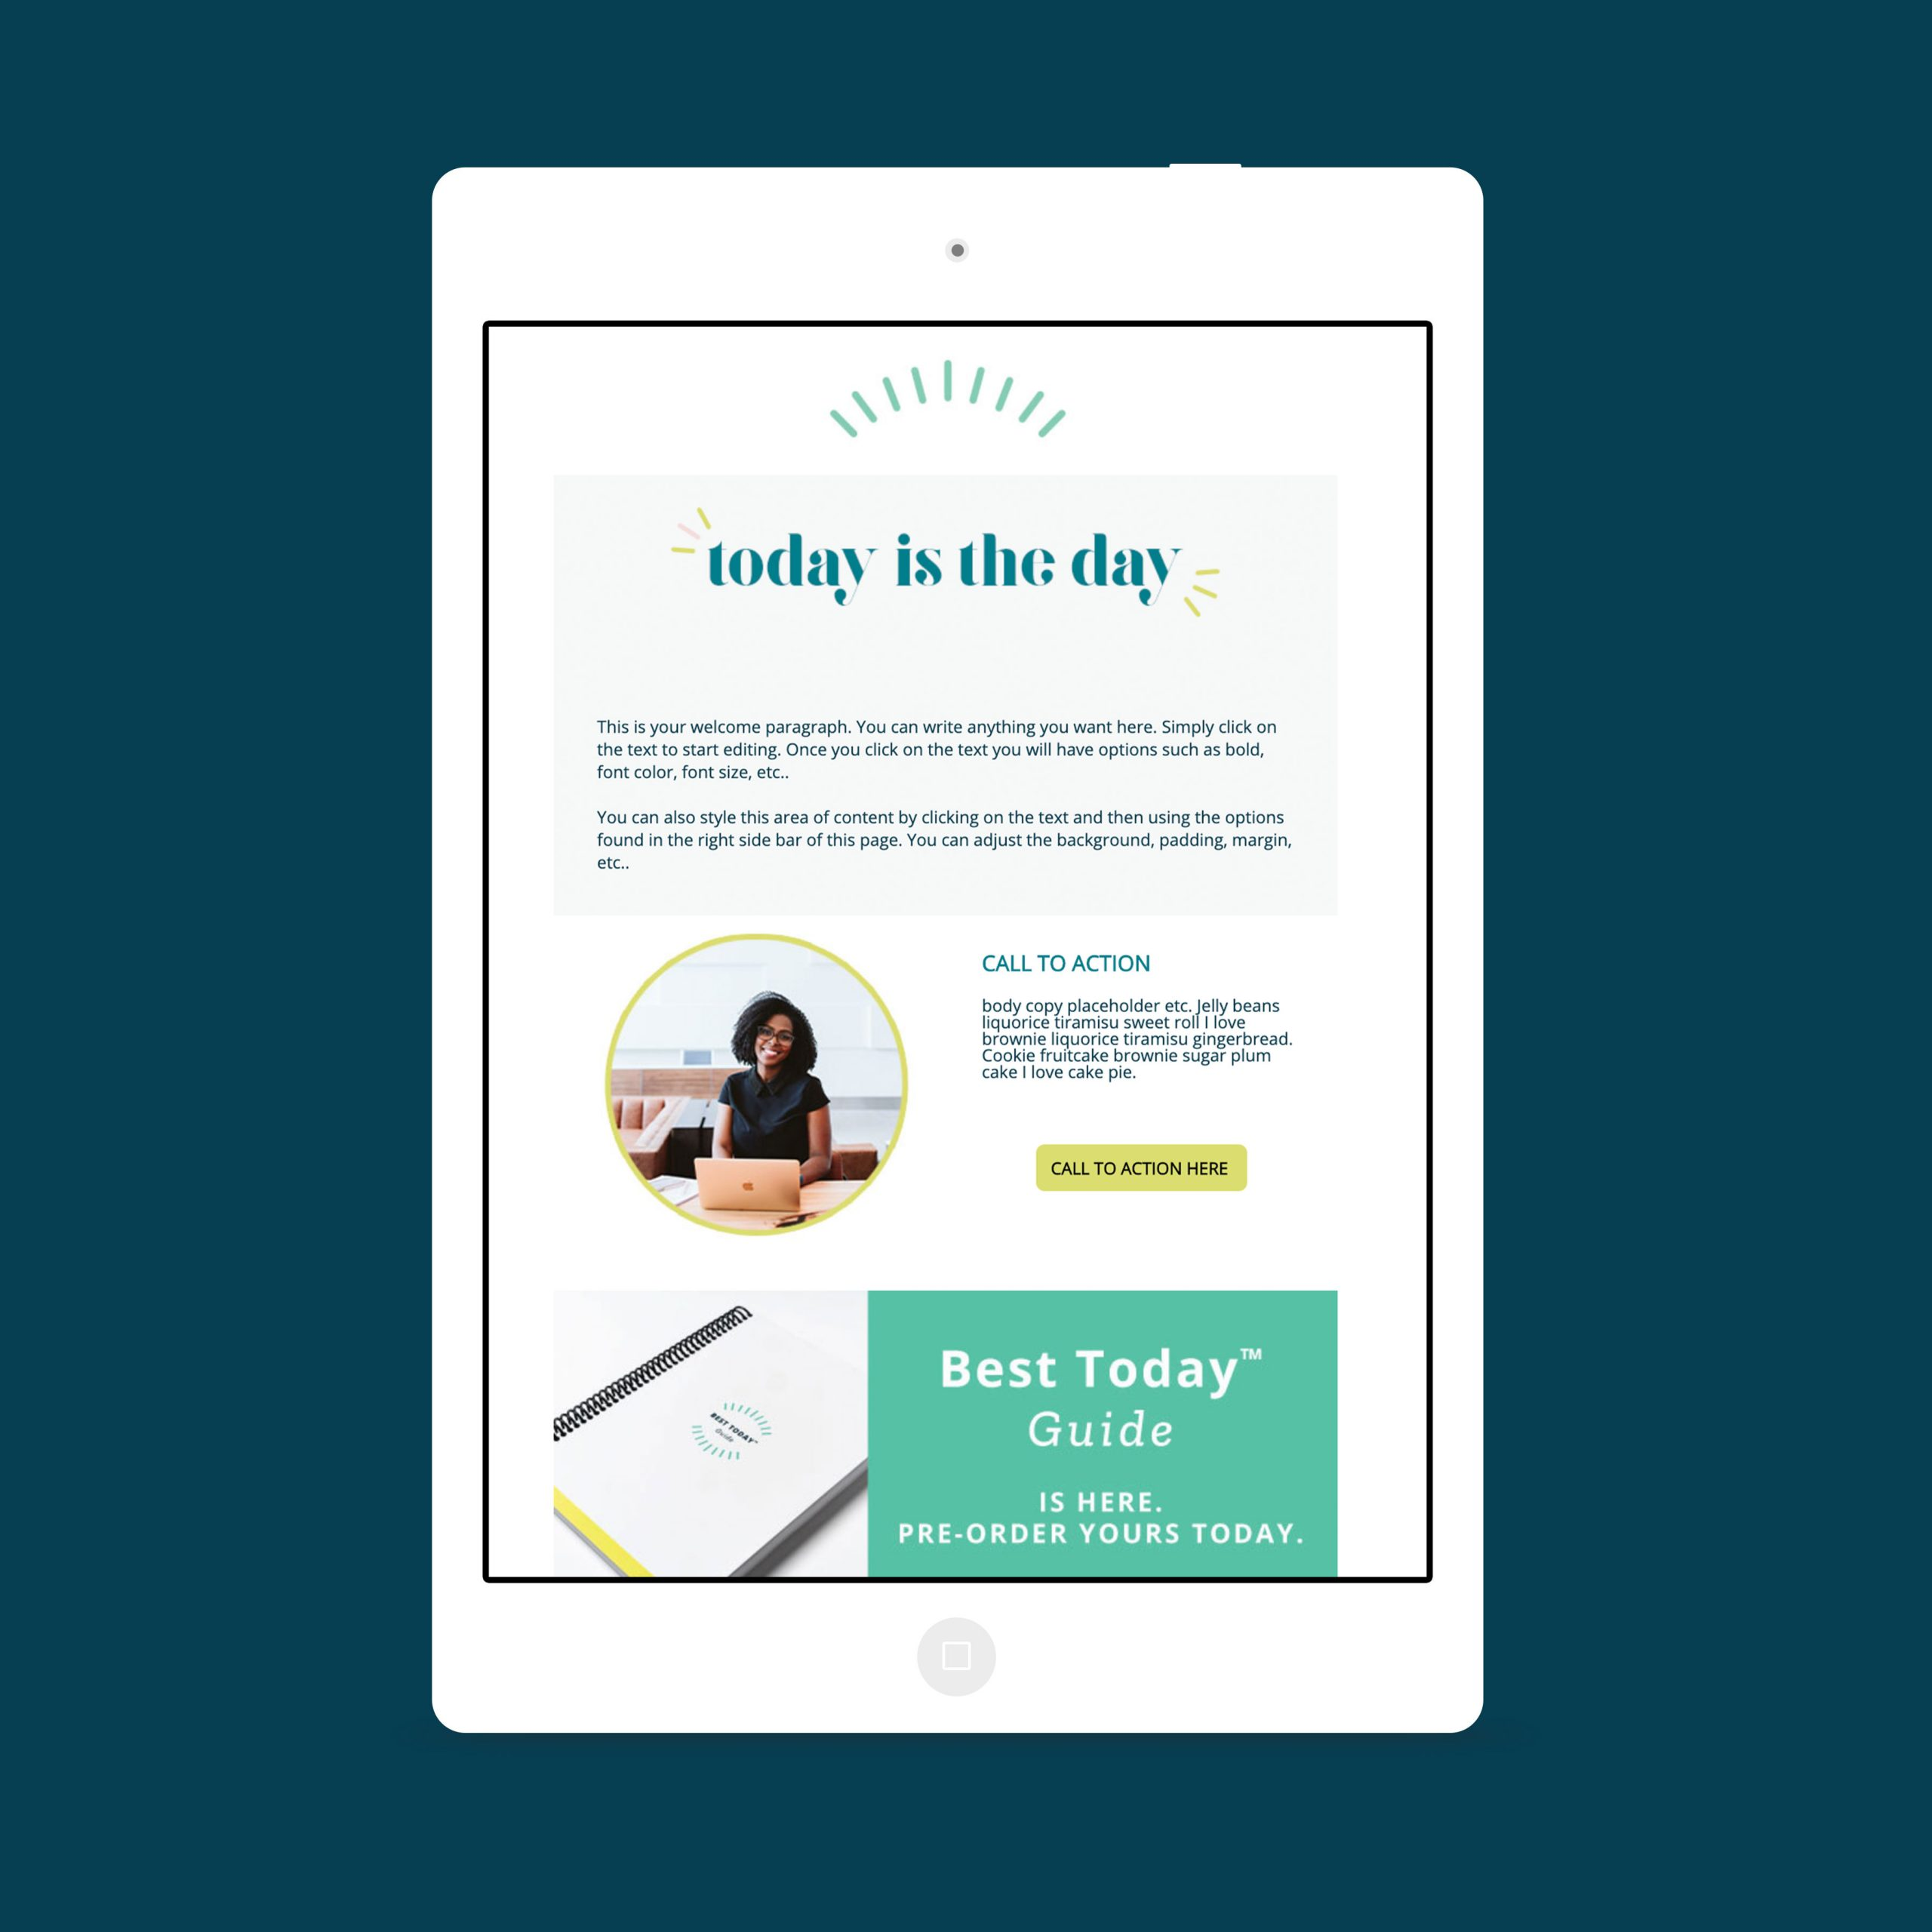 Email template designed for the Best Today™ brand with ActiveCampaign by C&V